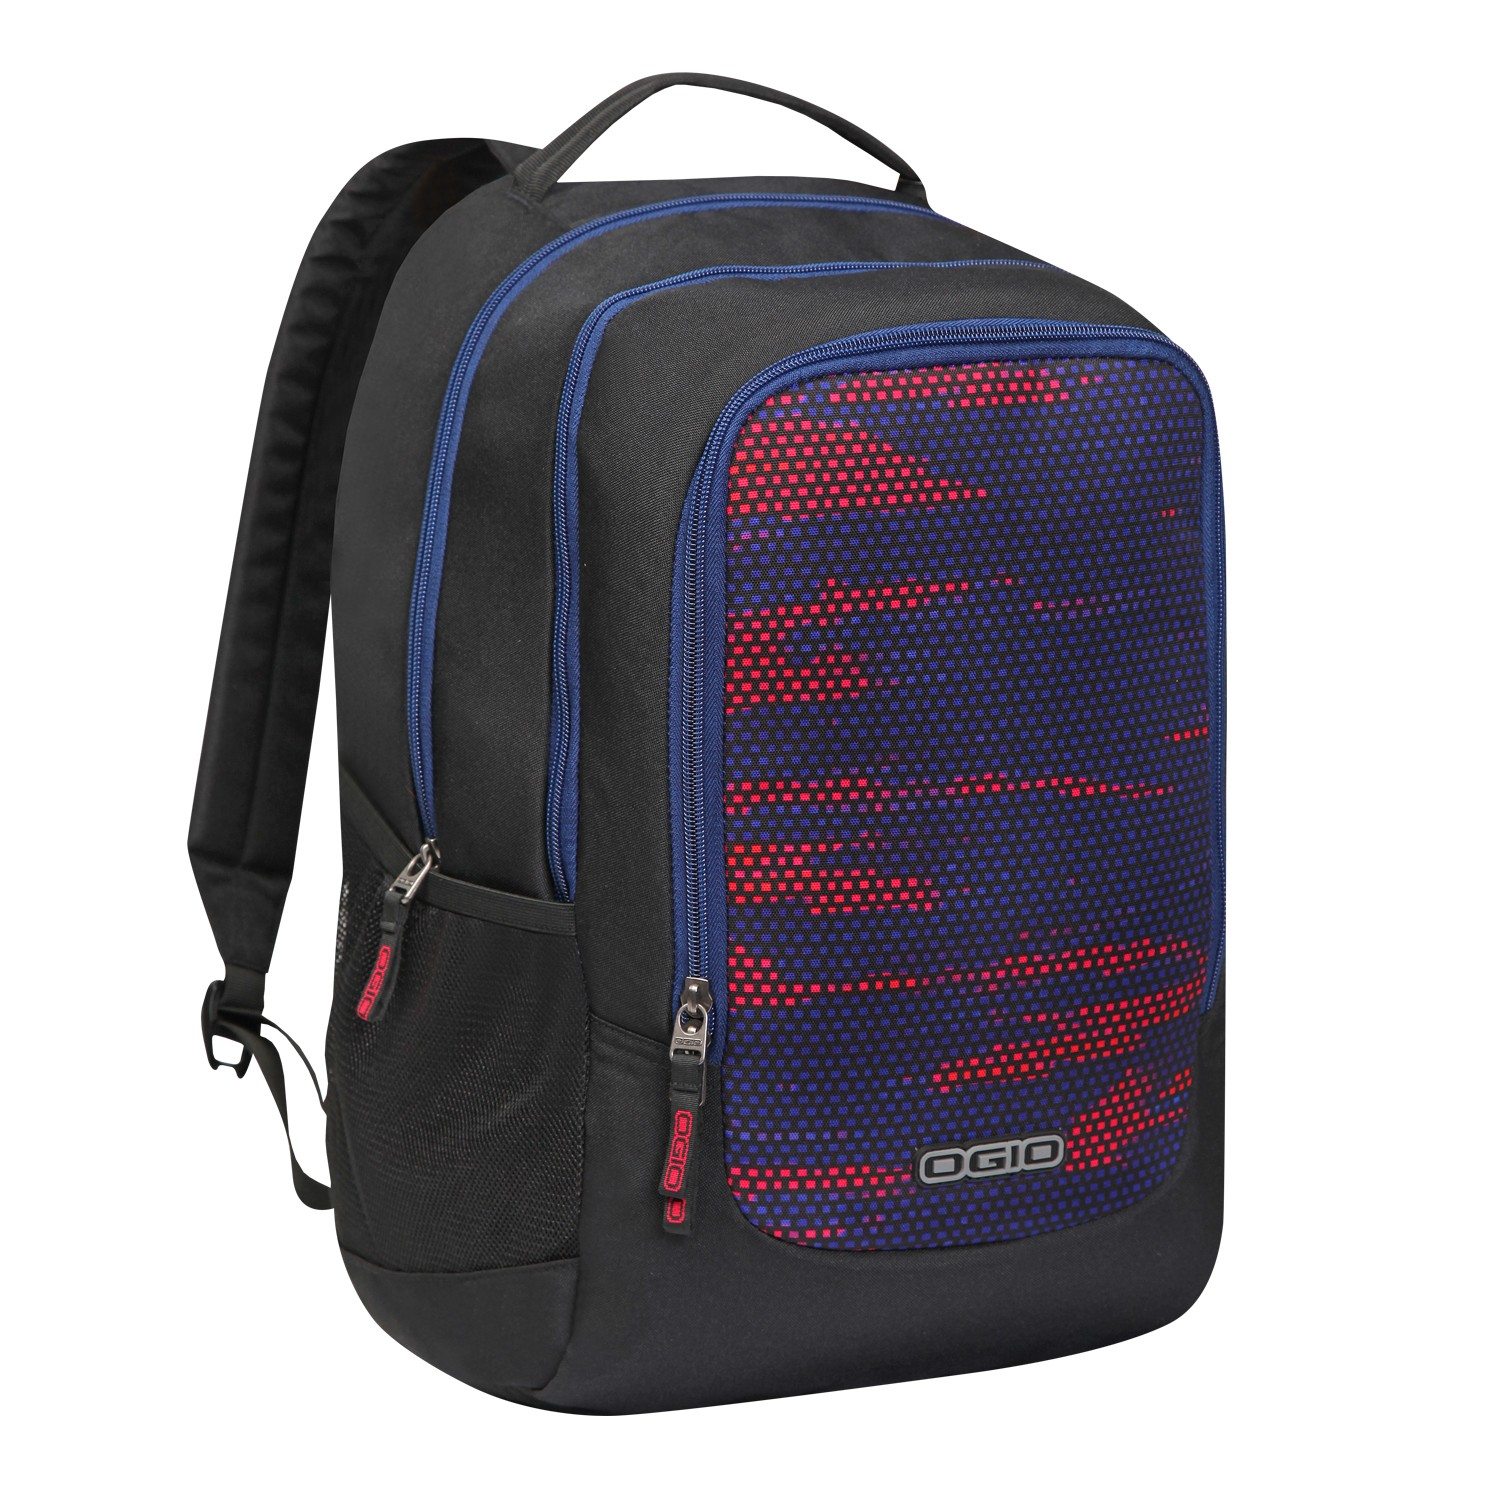 Ogio Tribune Backpack aYHCMzMN